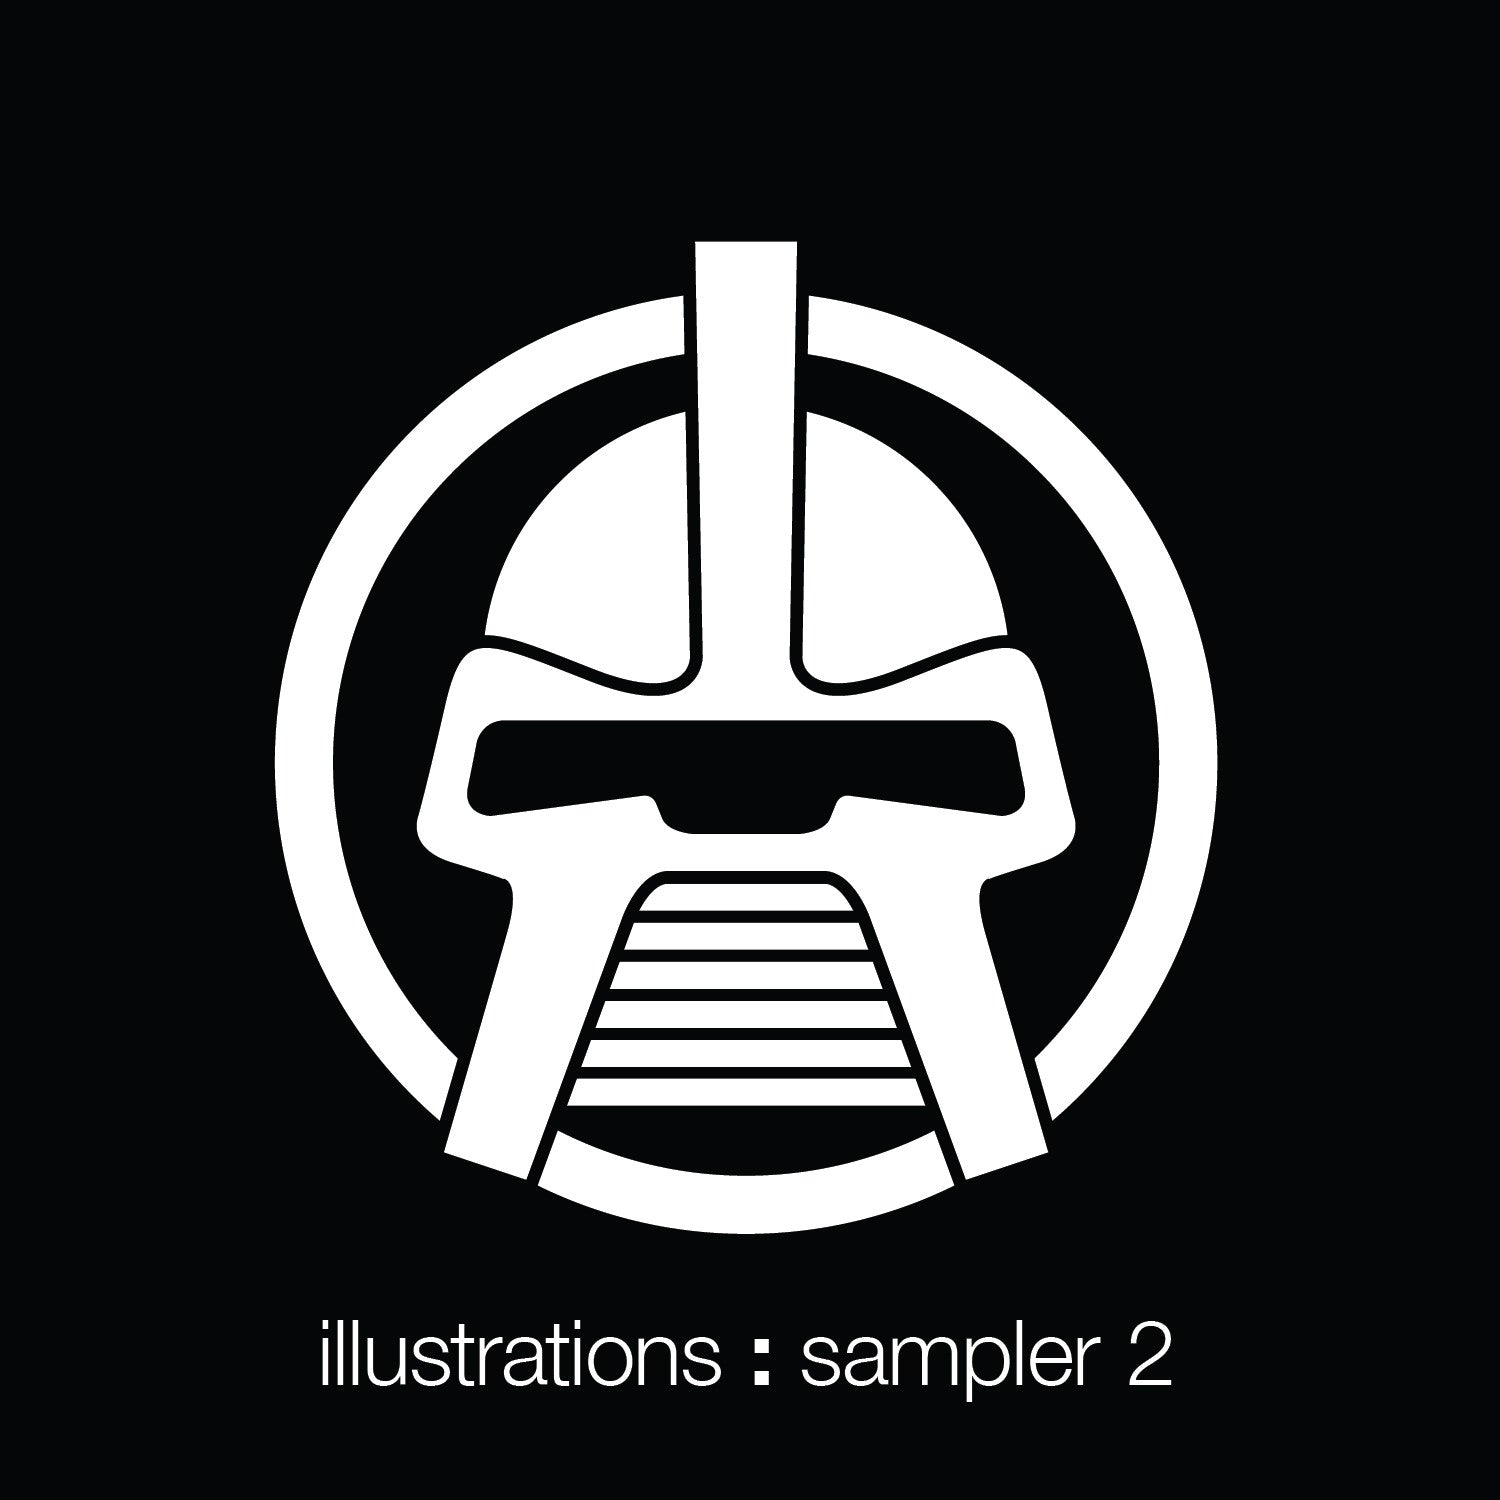 Cylon Illustrations : Sampler 2 - Unearthed Sounds